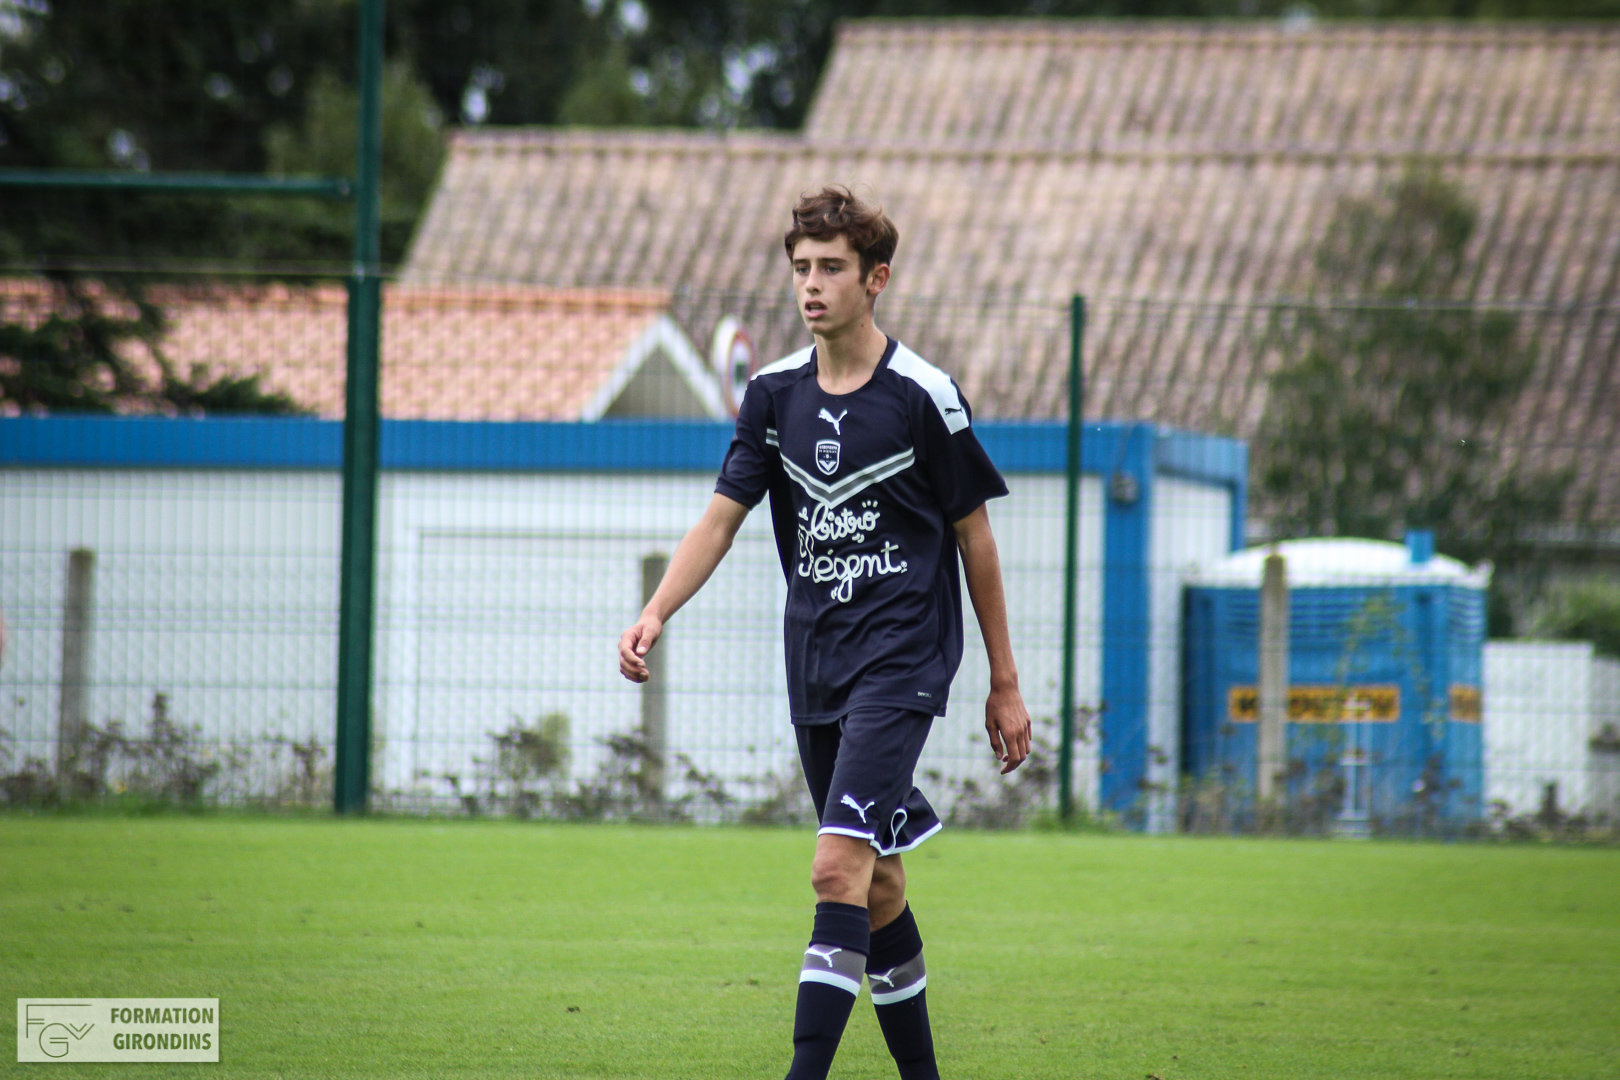 Cfa Girondins : Les Girondins joueront finalement en coupe ce week-end - Formation Girondins